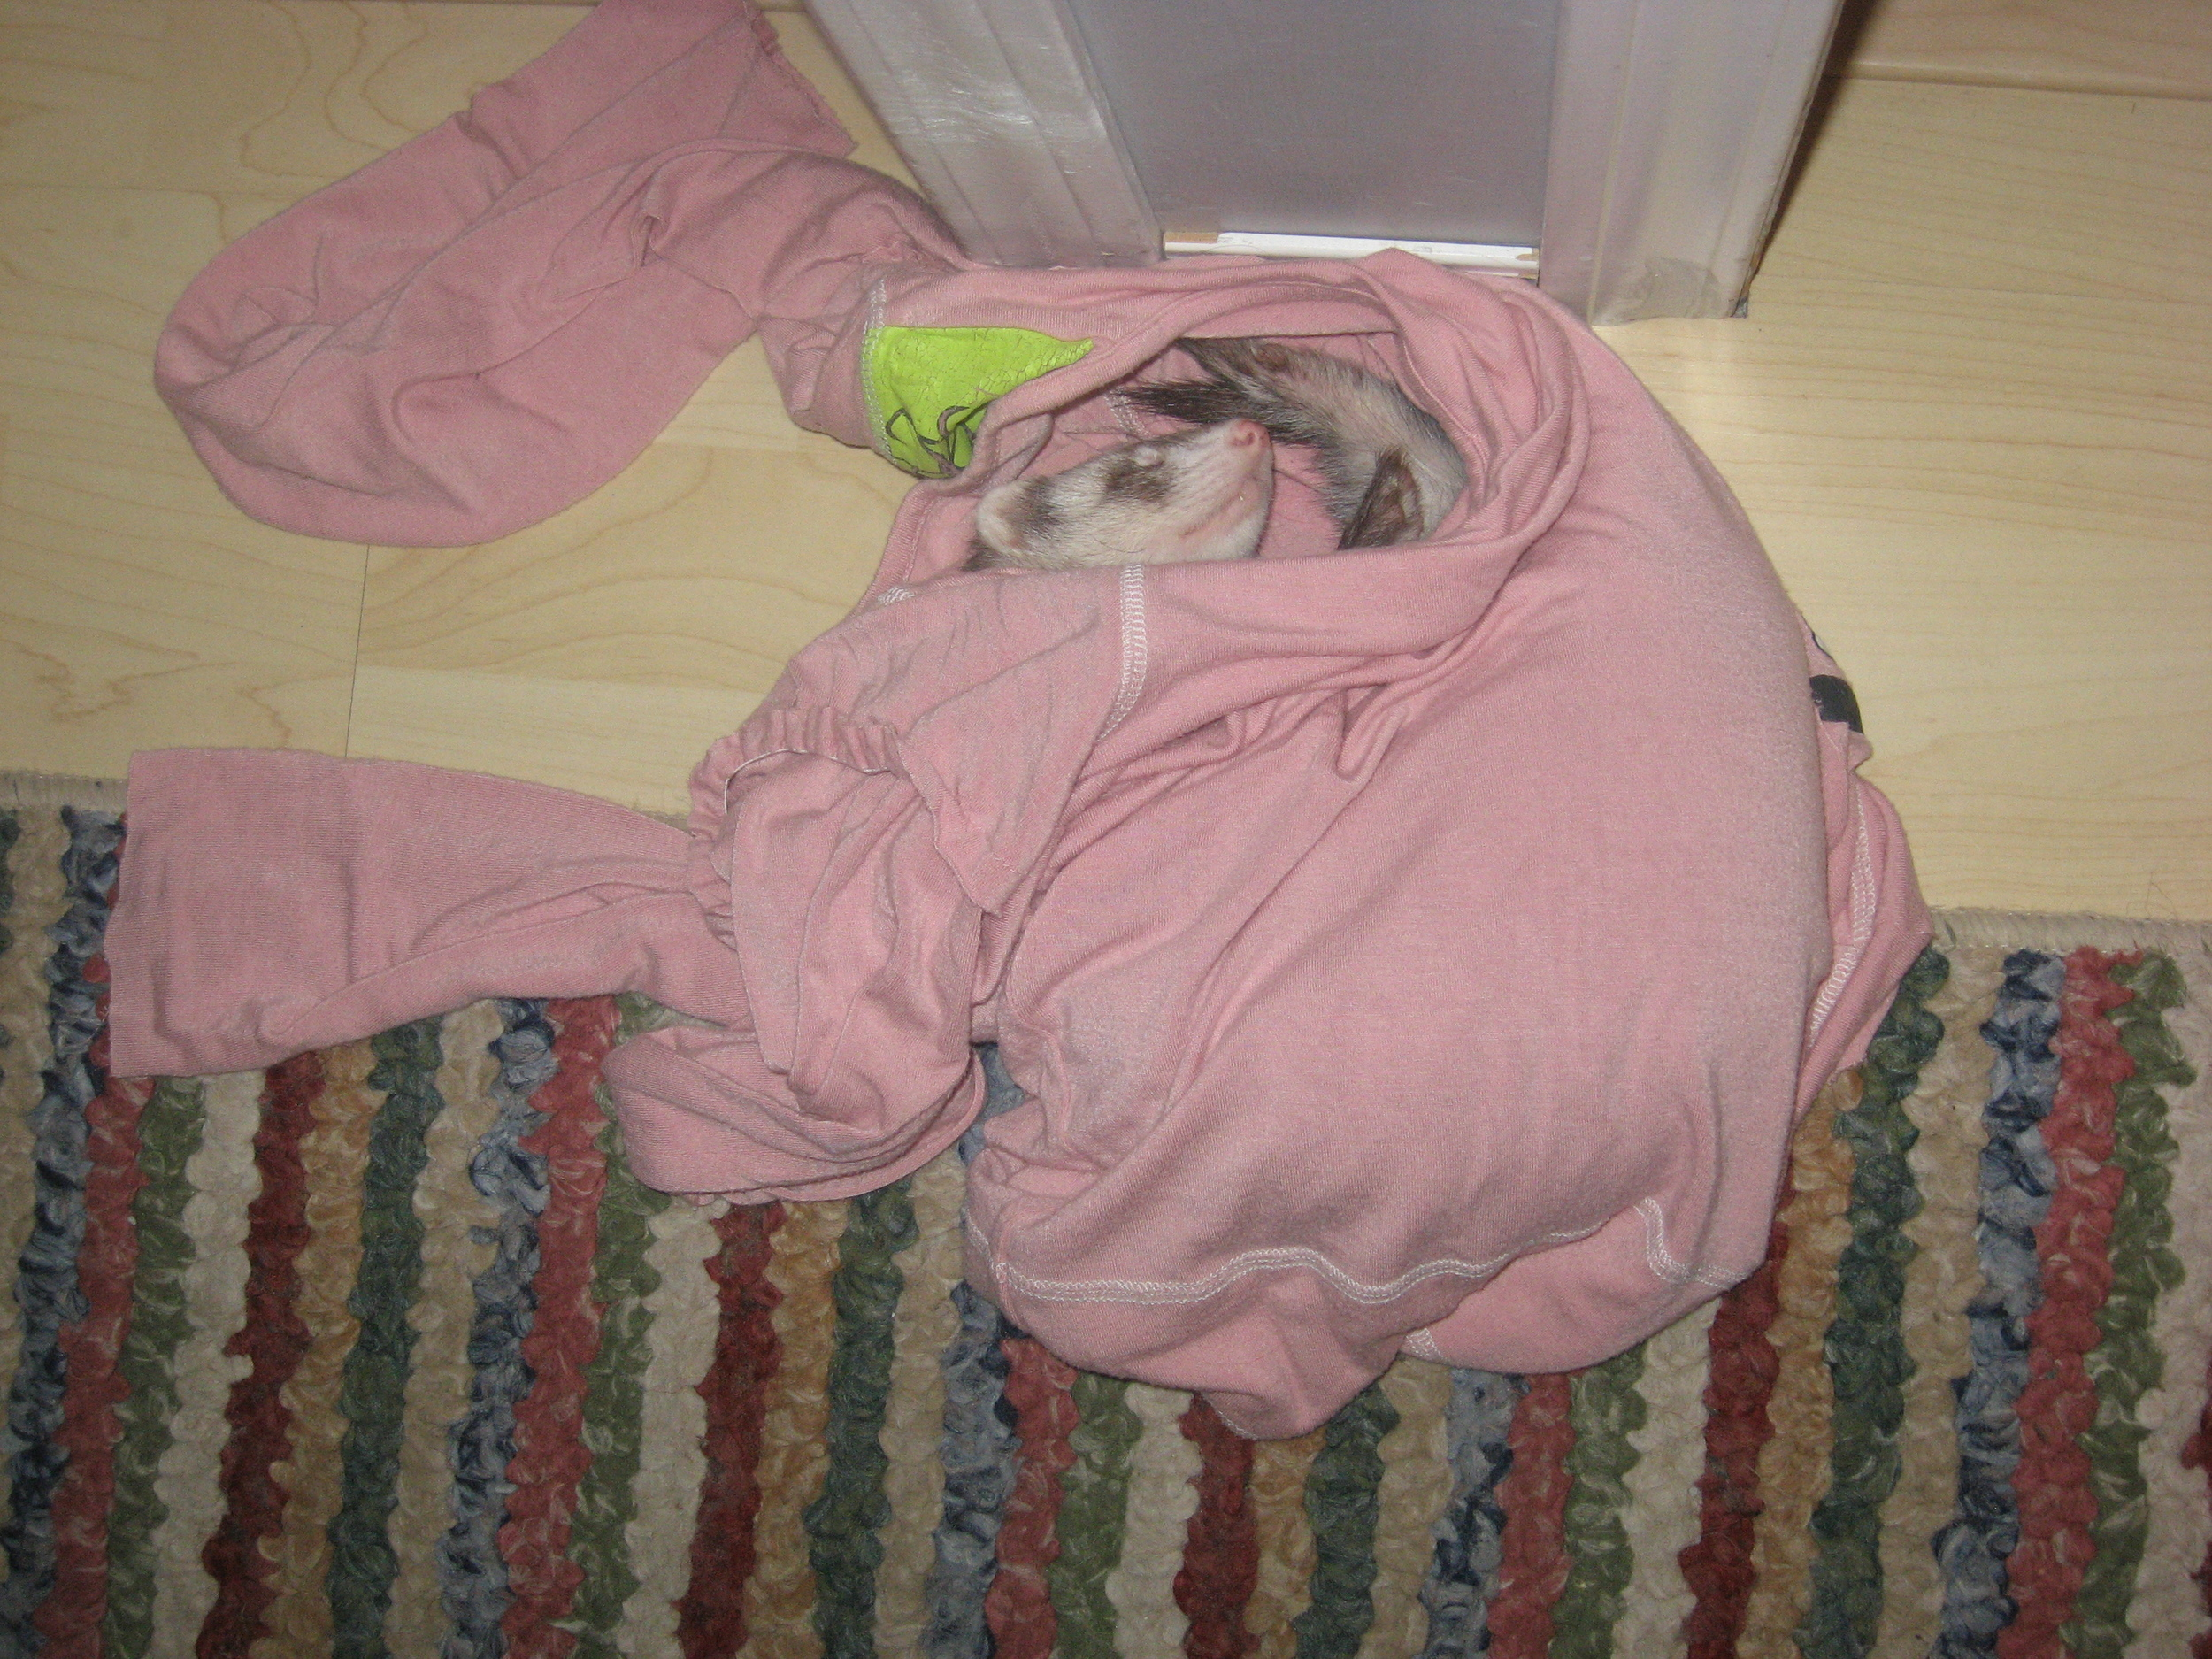 In my shirt. That's one thing about ferrets. If there are clothes or blankets on the floor, I have to step carefully because therecould be a ferretsleeping inside.